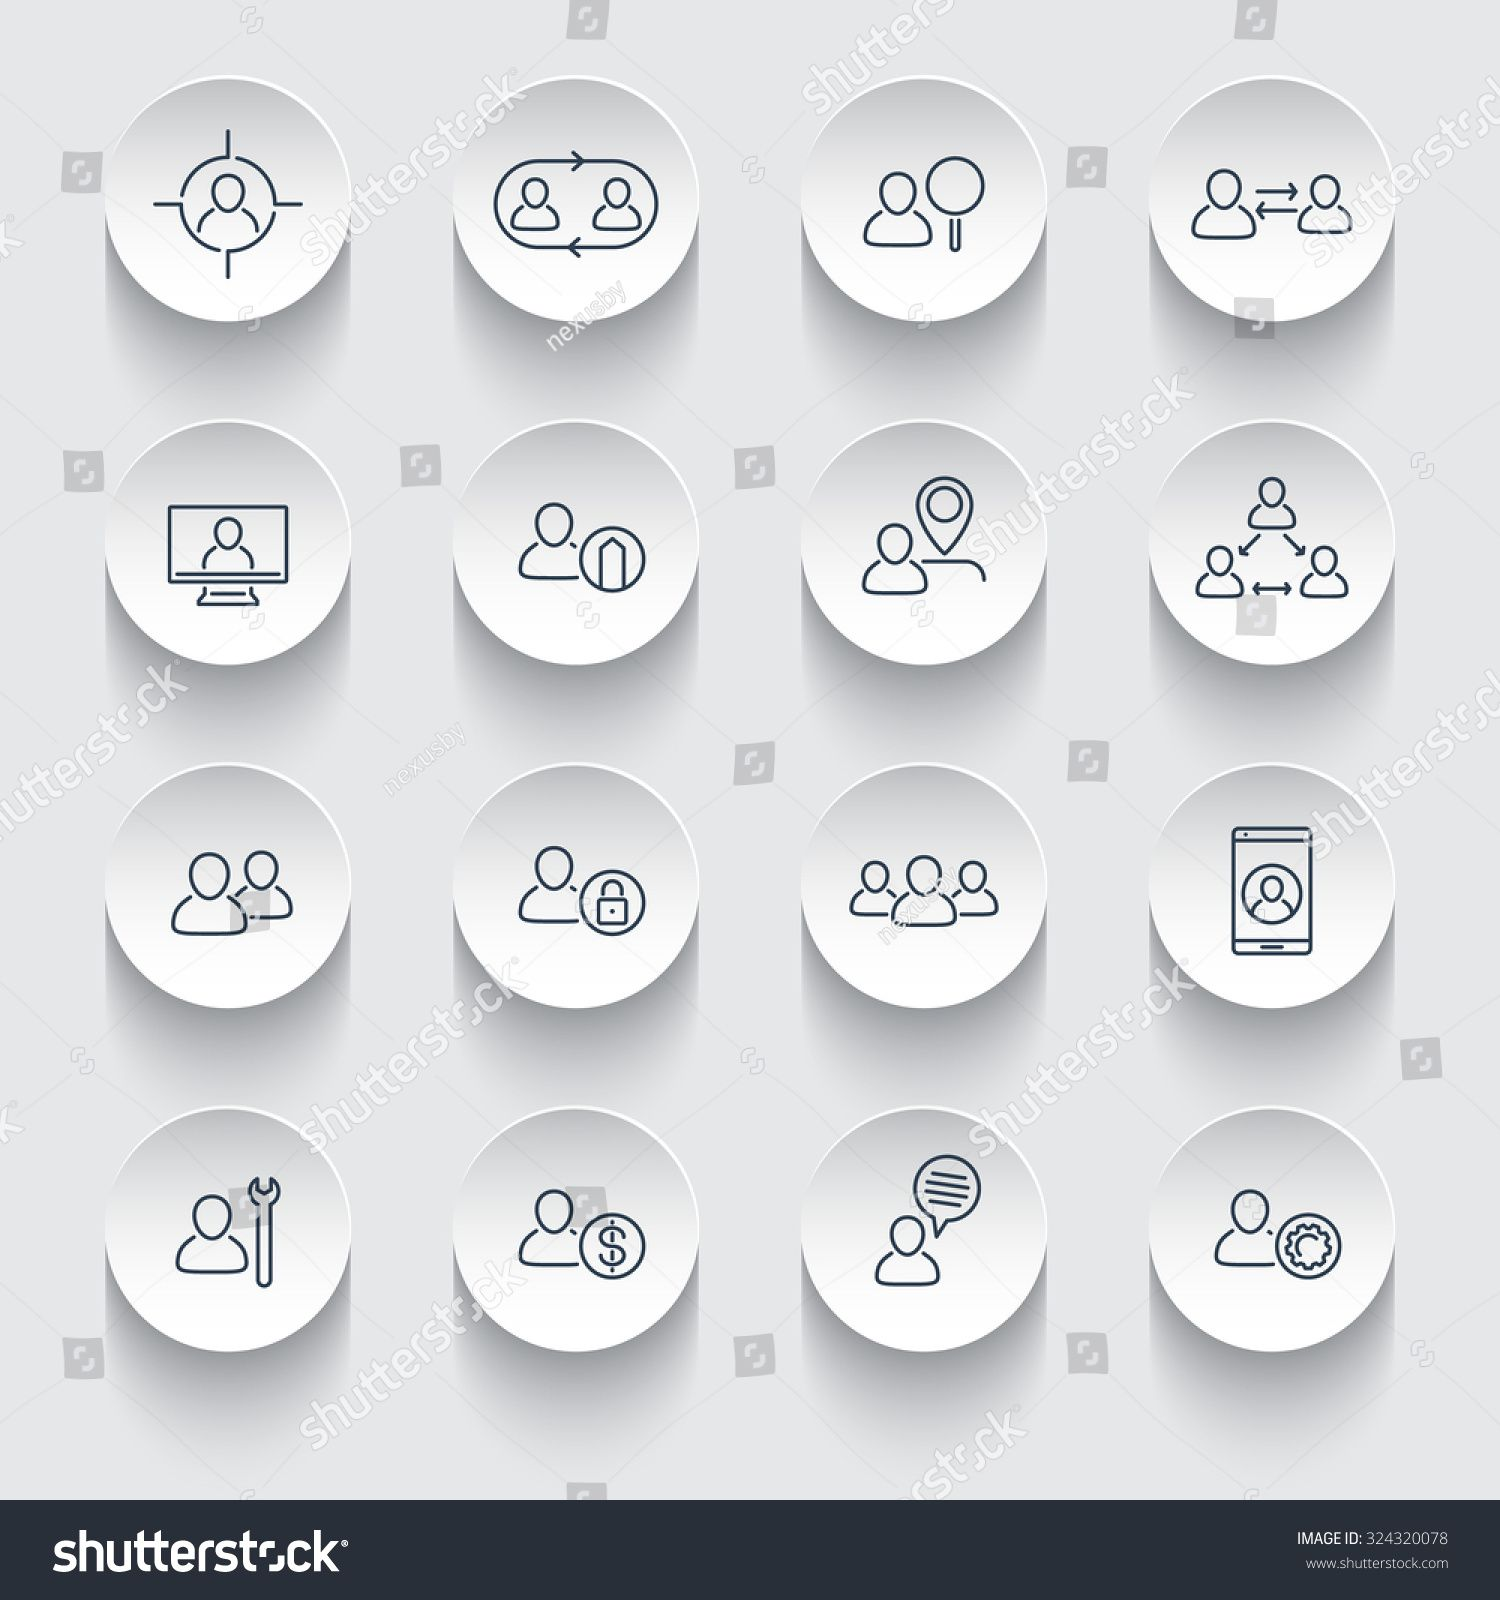 Personnel, Human resources, HR, staff rotation, line icons